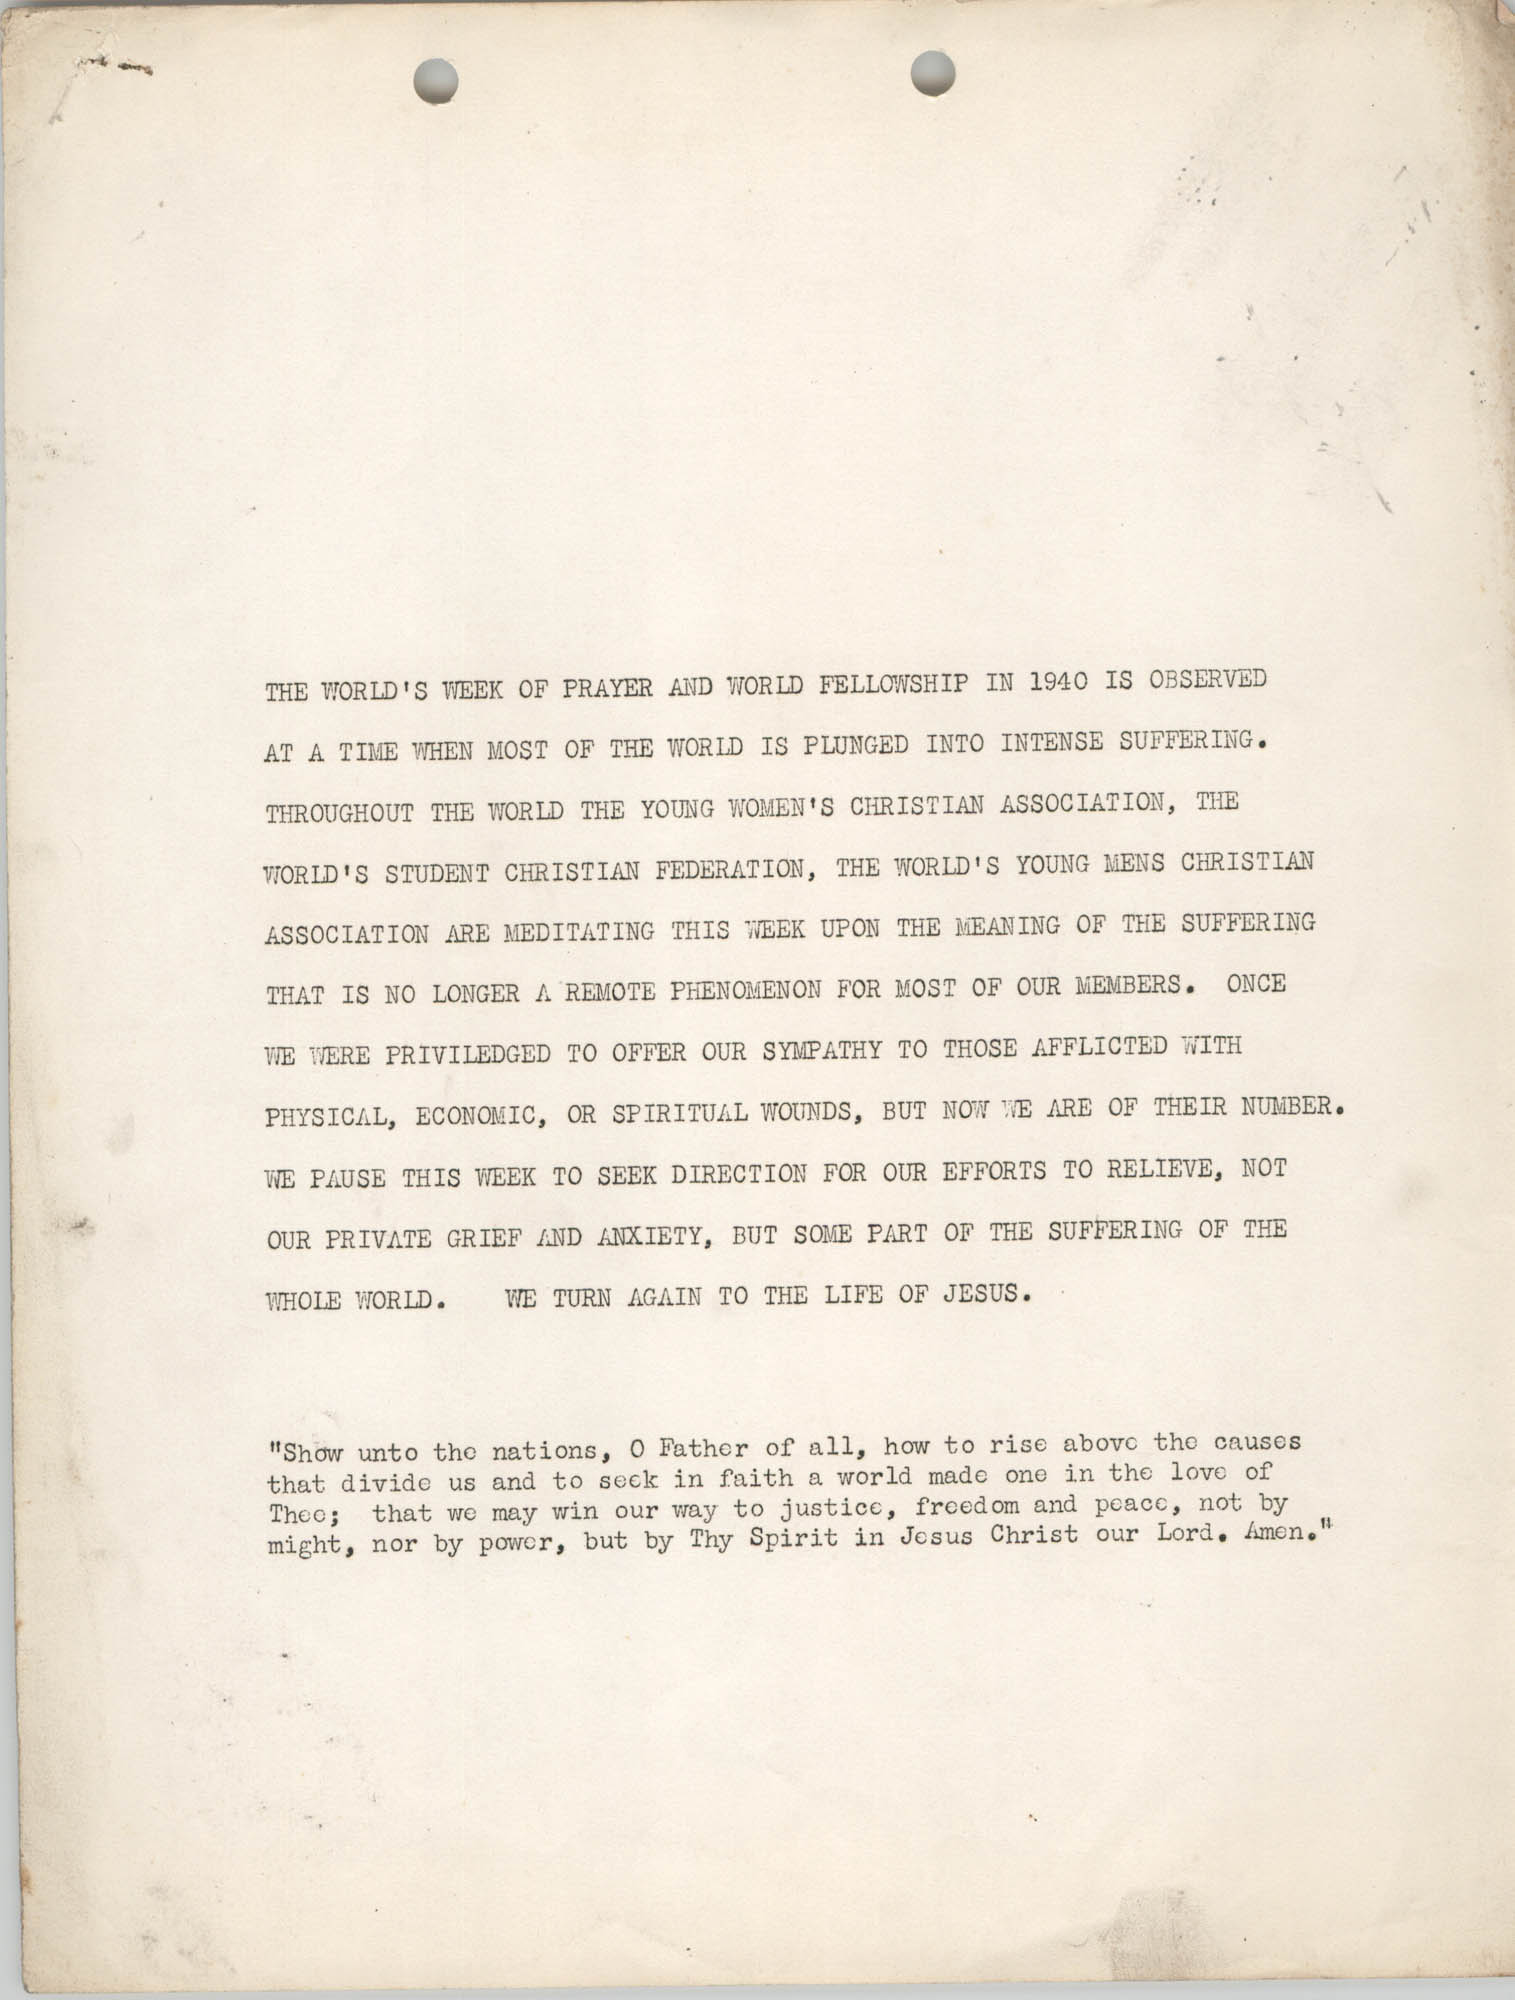 Bulletin of the National Council on Household Employment, Series II, No. 1, December 1940, Page 9